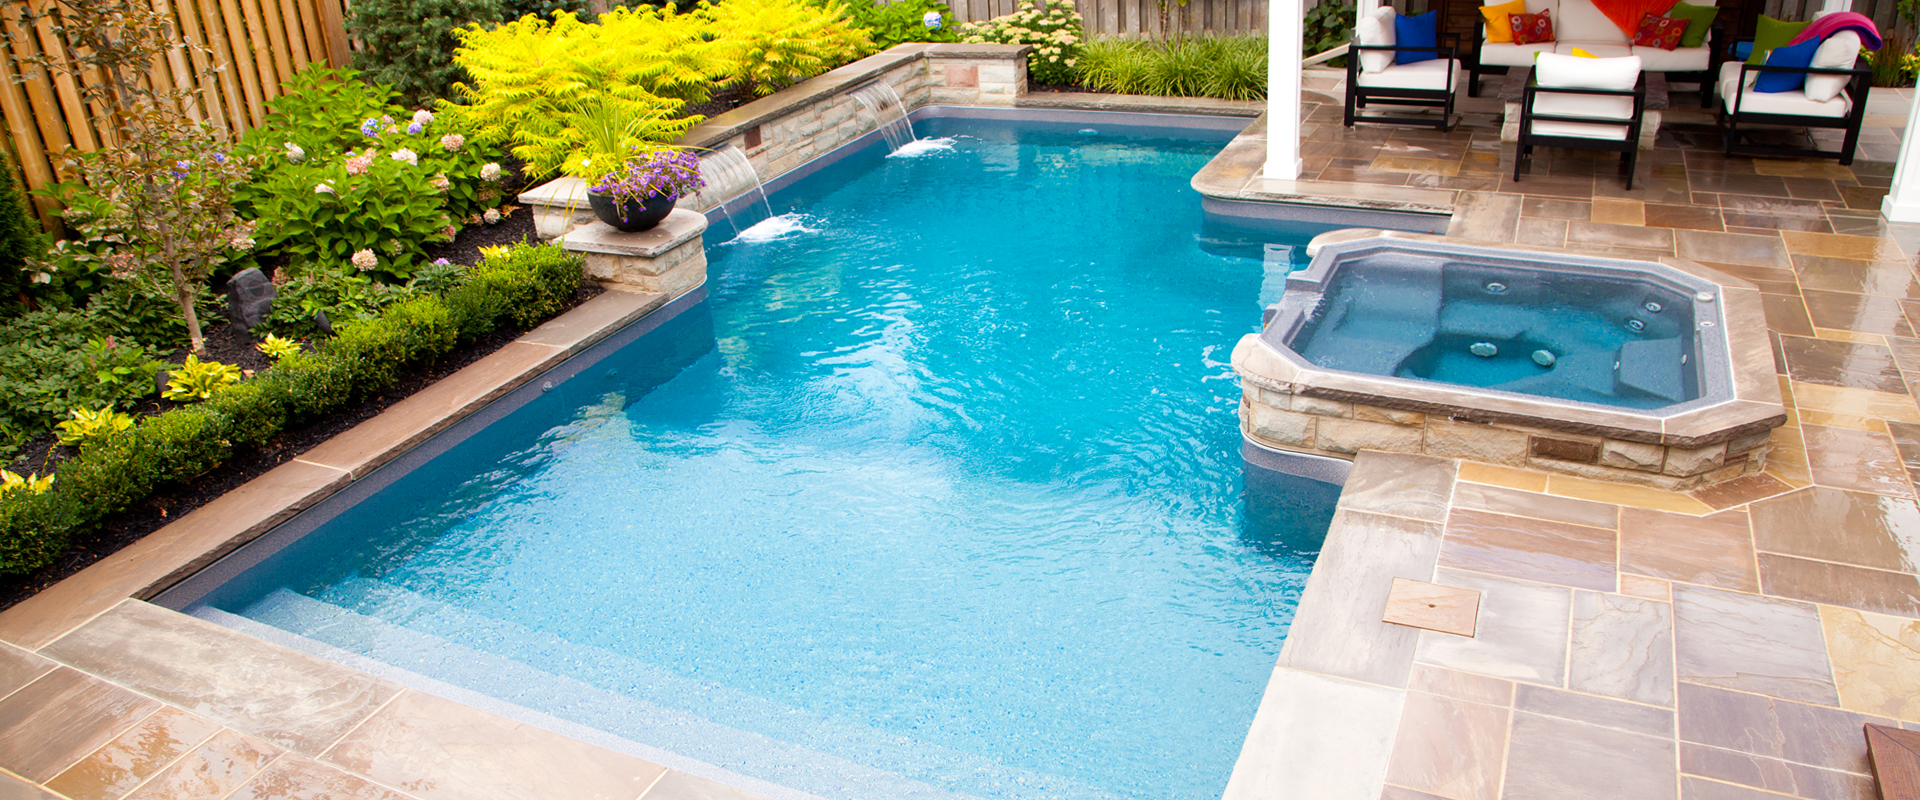 Inground onground and above ground pools boldt pools for Pictures of small inground pools